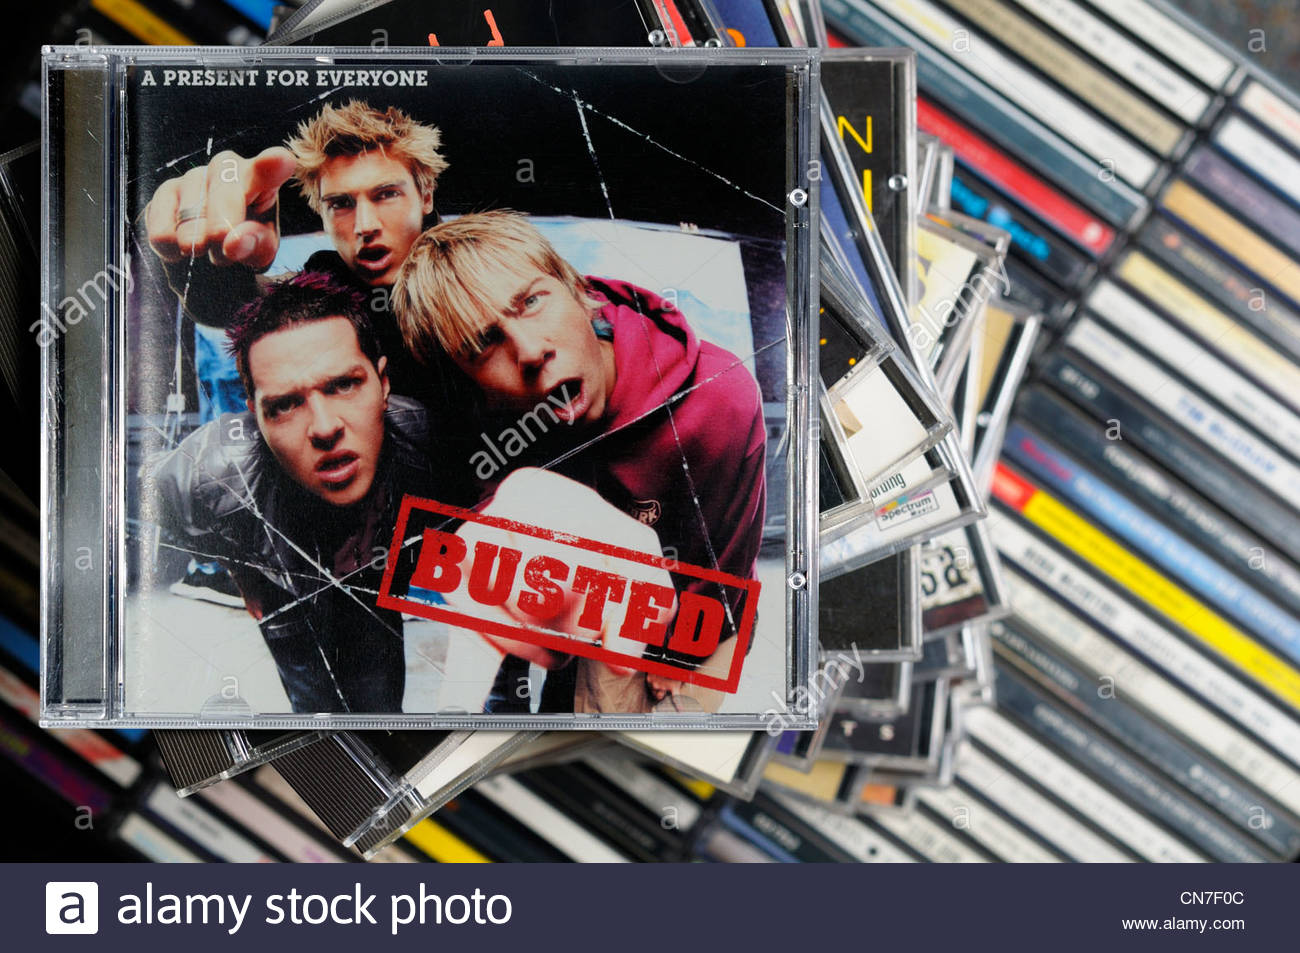 Busted Band Stock Photos & Busted Band Stock Images - Alamy